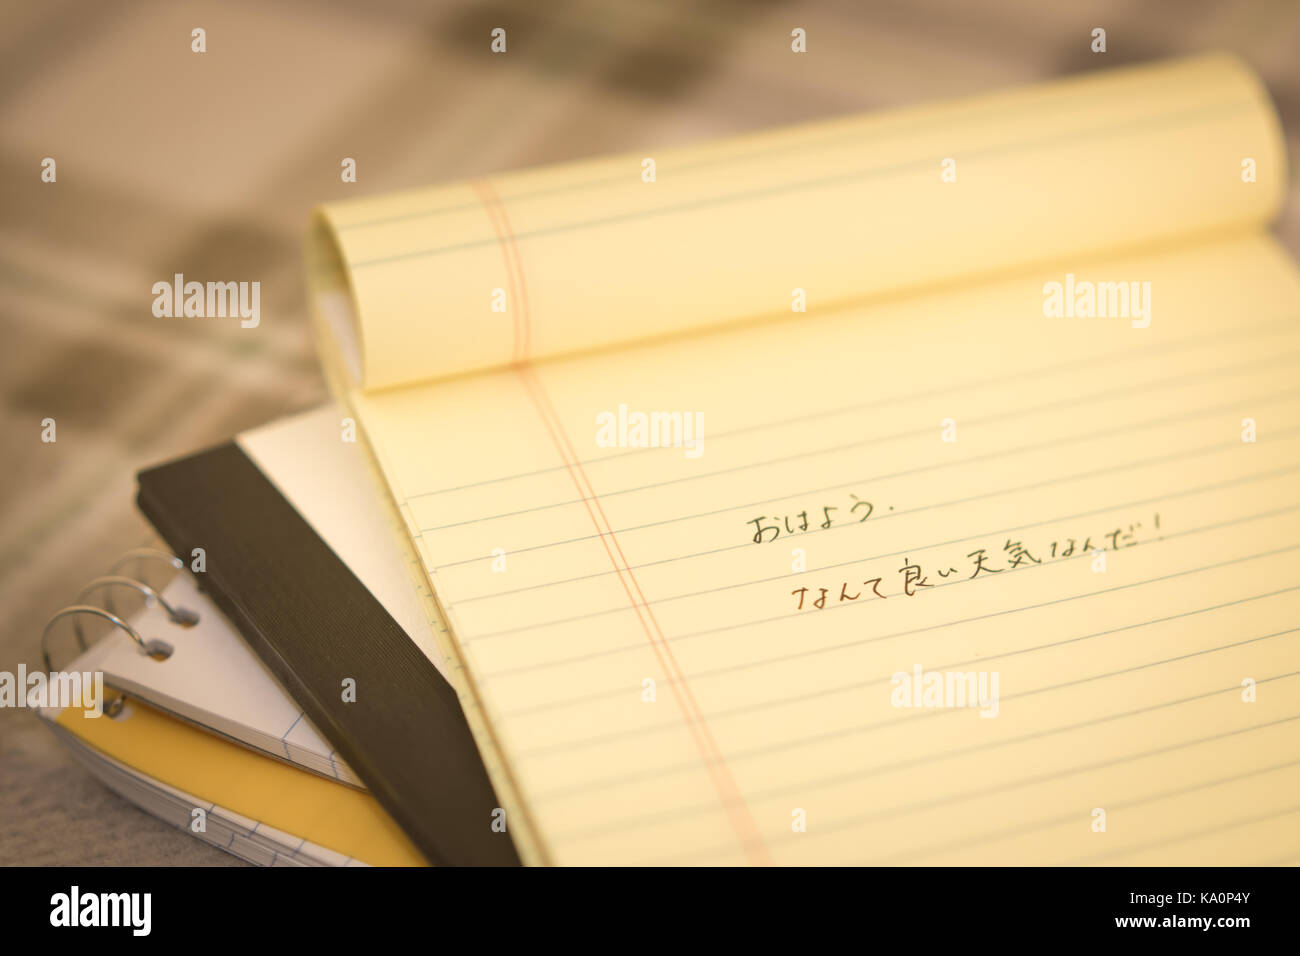 Japanese Learning New Language Writing Greetings On The Notebook